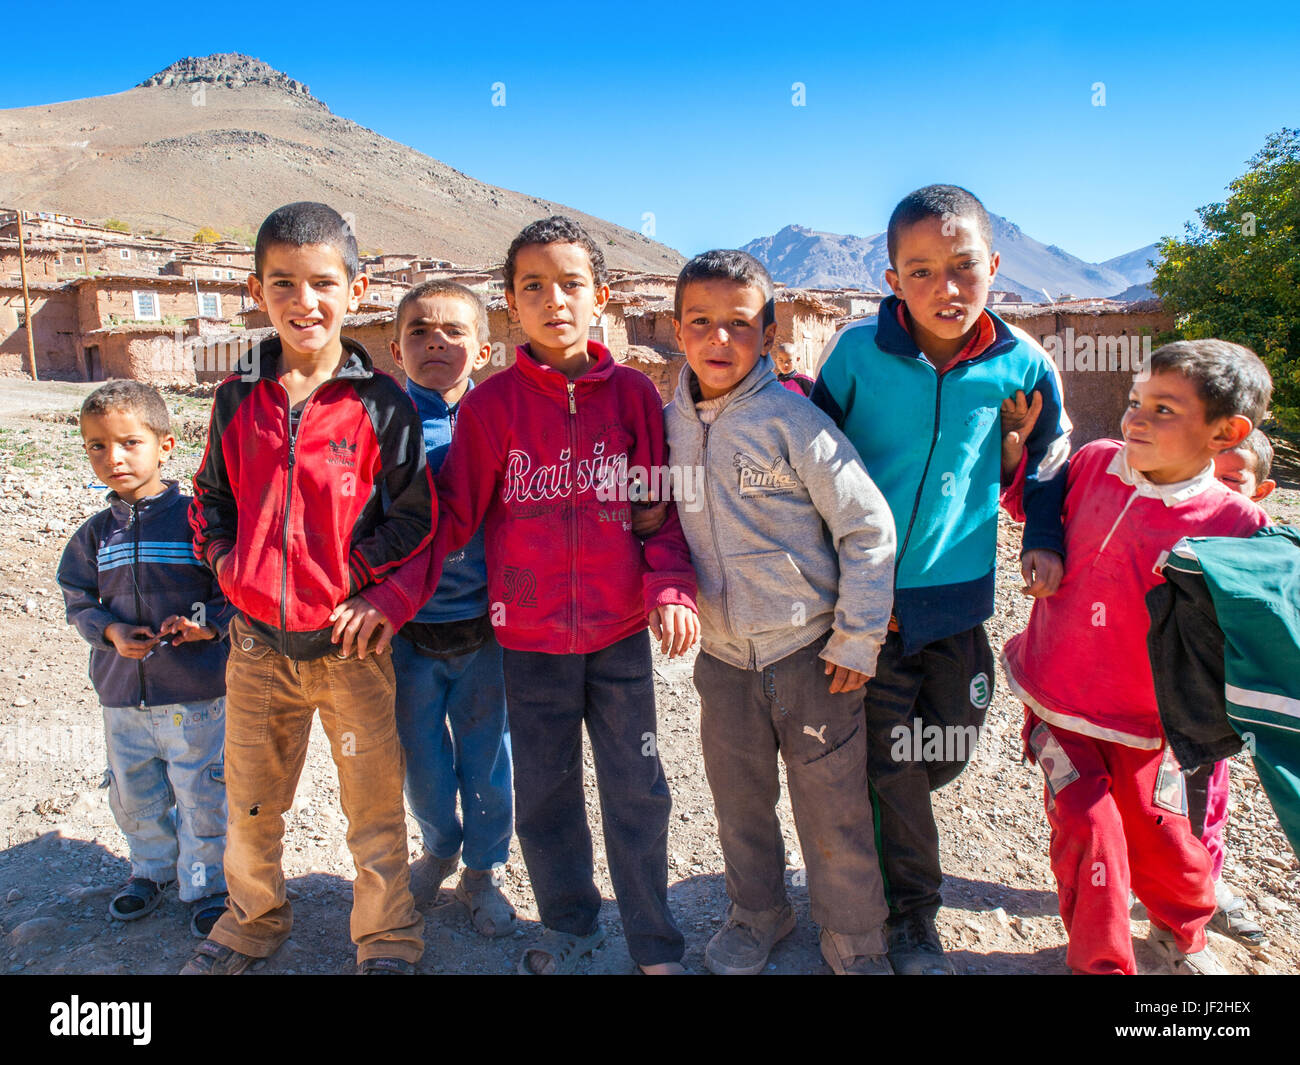 A group of inquisitive children in a remote village in the Atlas mountains of Morocco - Stock Image